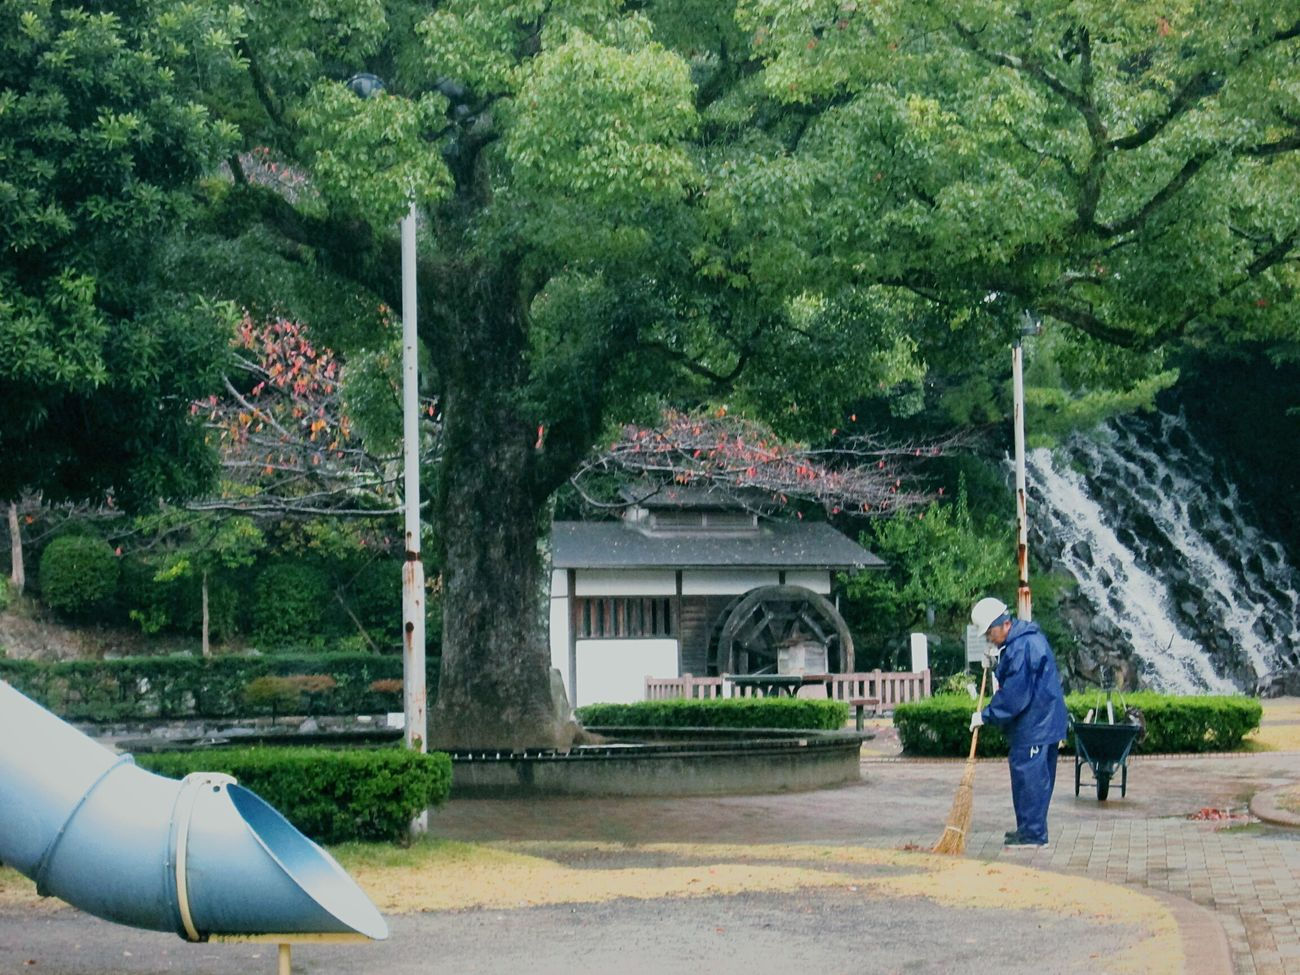 Cleaning Time Tree Parks Green Japan In Japan Waterwheel Waterfall Mister Uncle 曇り、時々はたらくおじさん Cloudiness